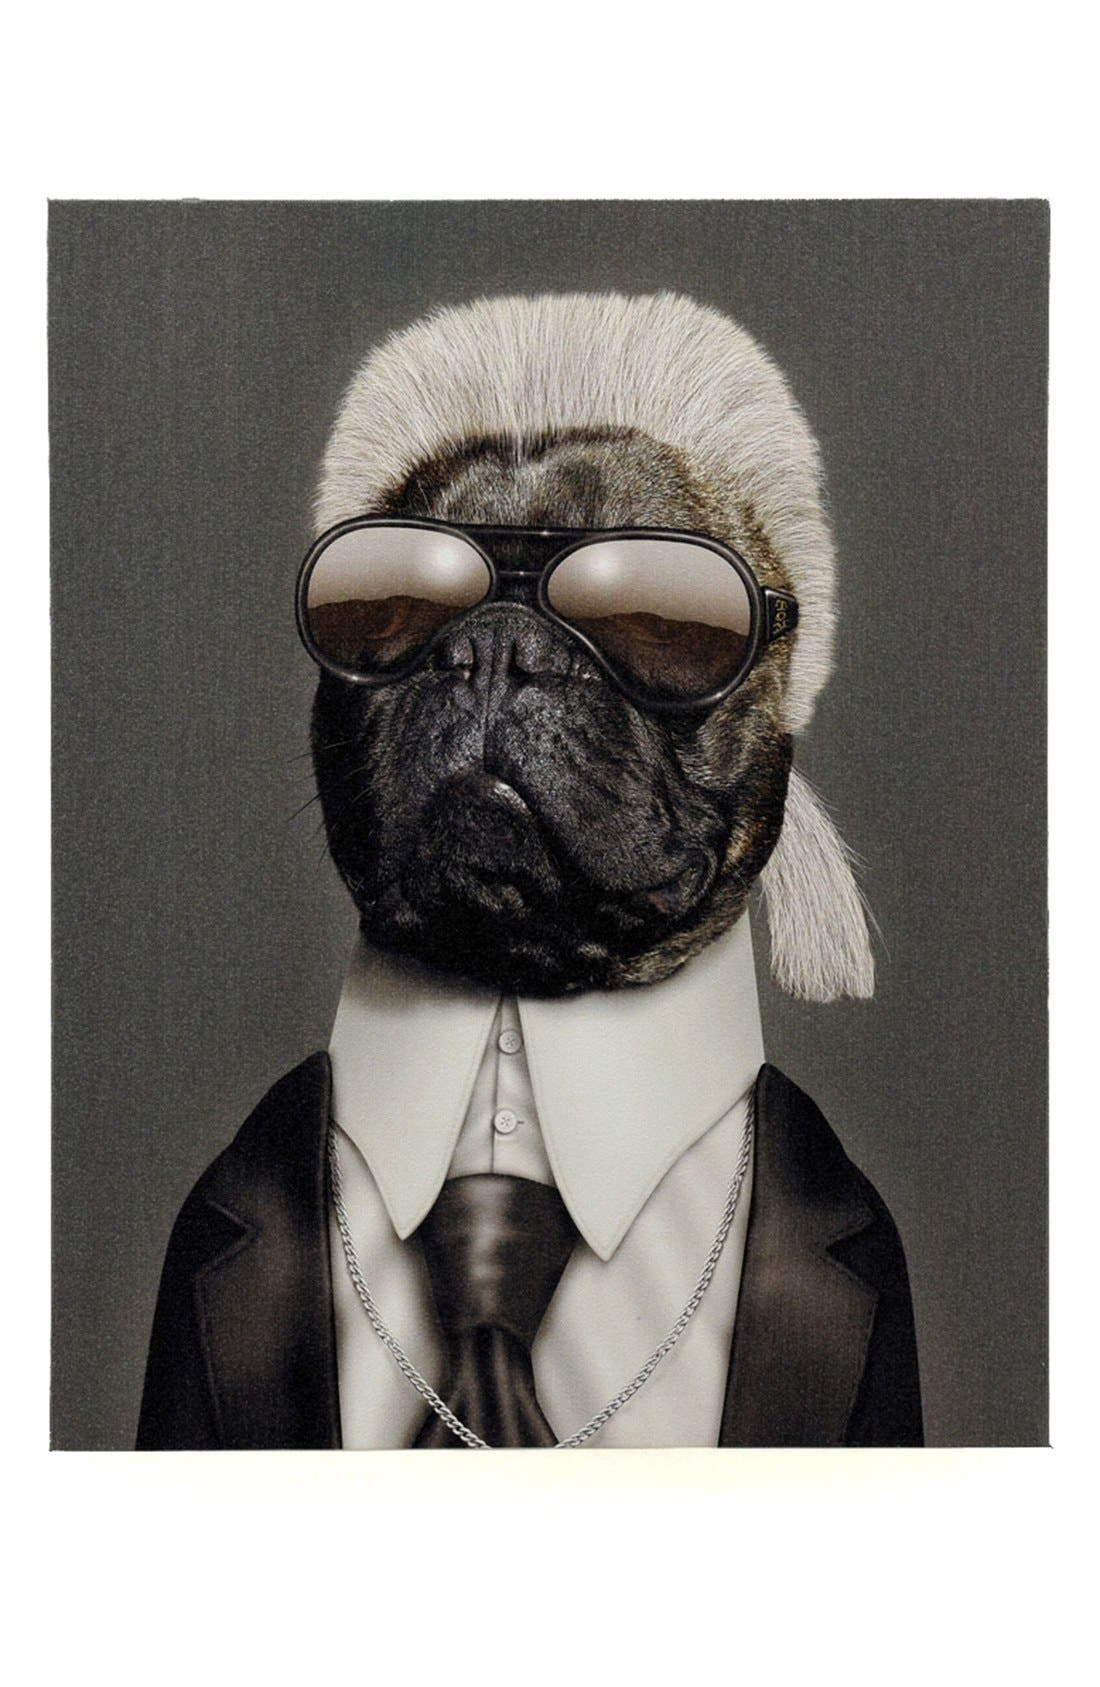 Empire Art Direct 'Pets Rock™ - Fashion' Giclée Wall Art